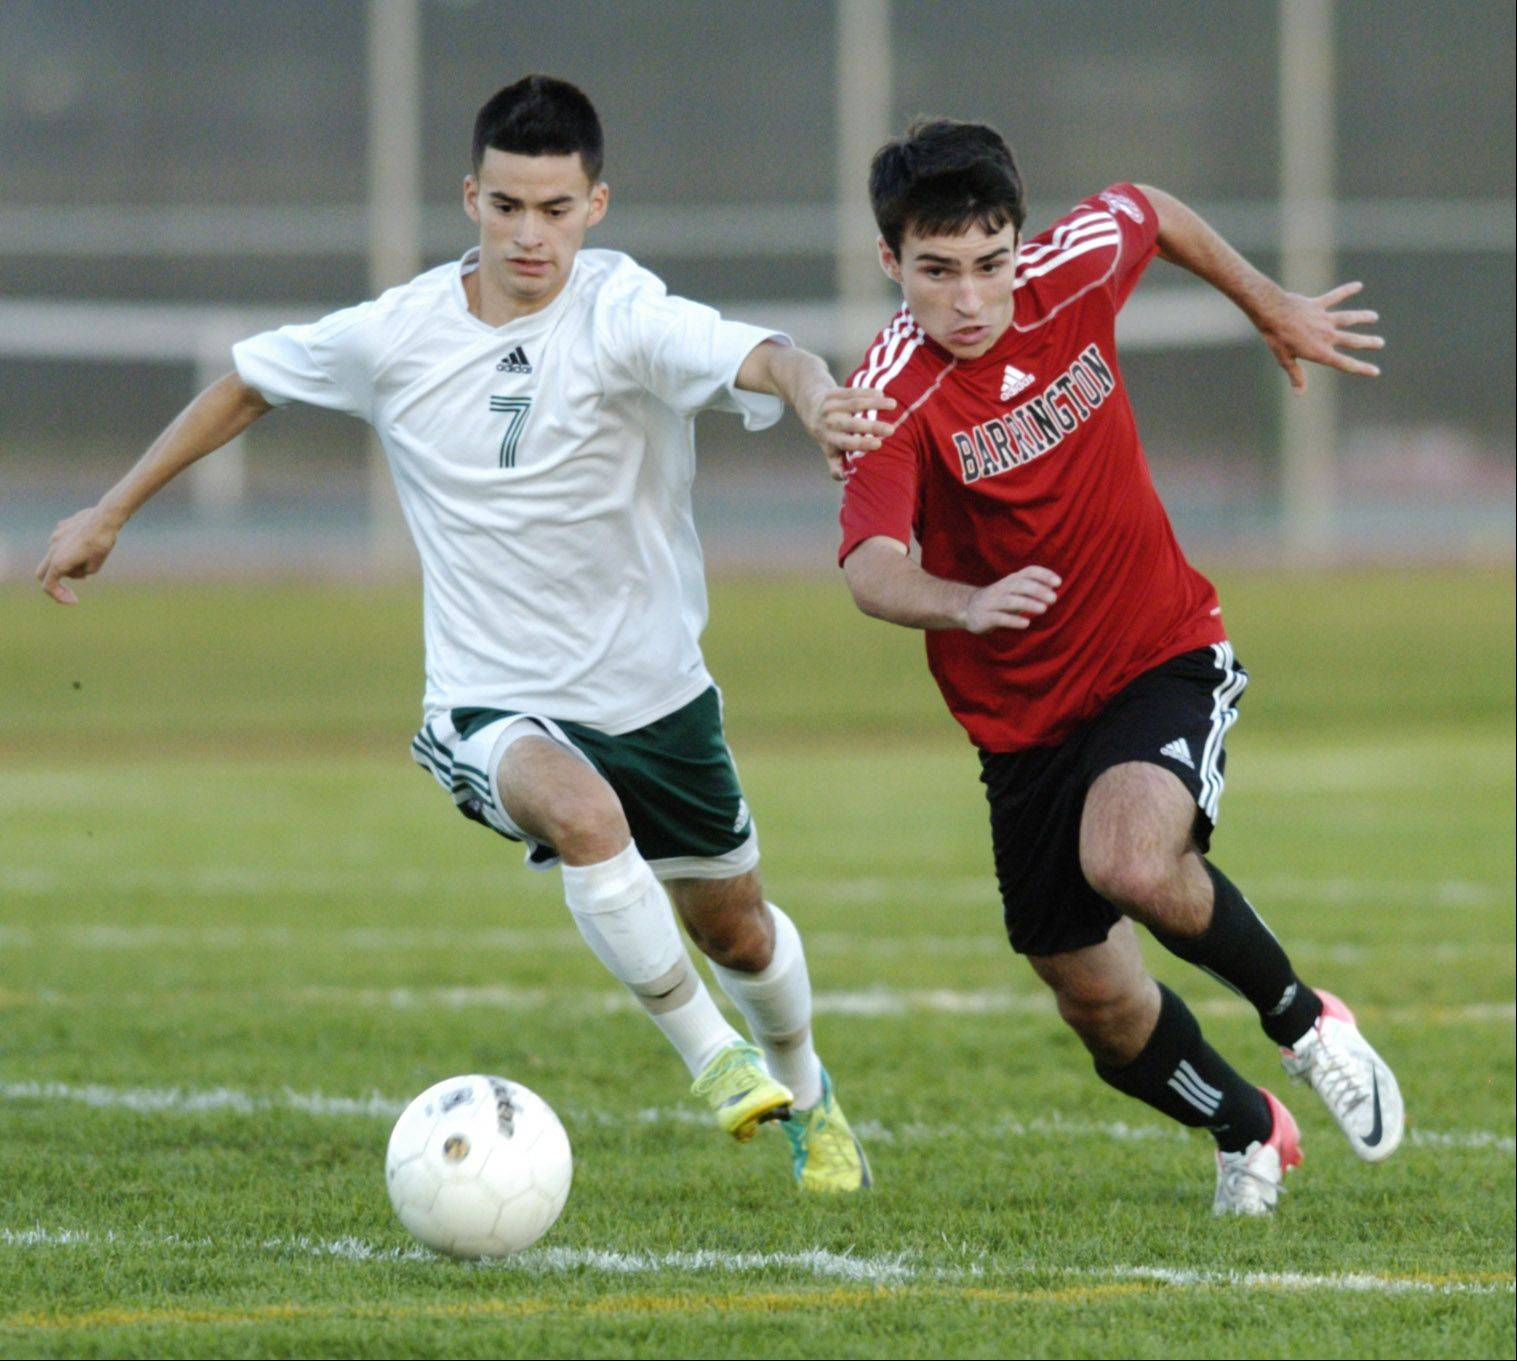 Elk Grove's Hugo Sanchez, left, and Barrington's Ethan Claes pursue the ball during Tuesday's game.